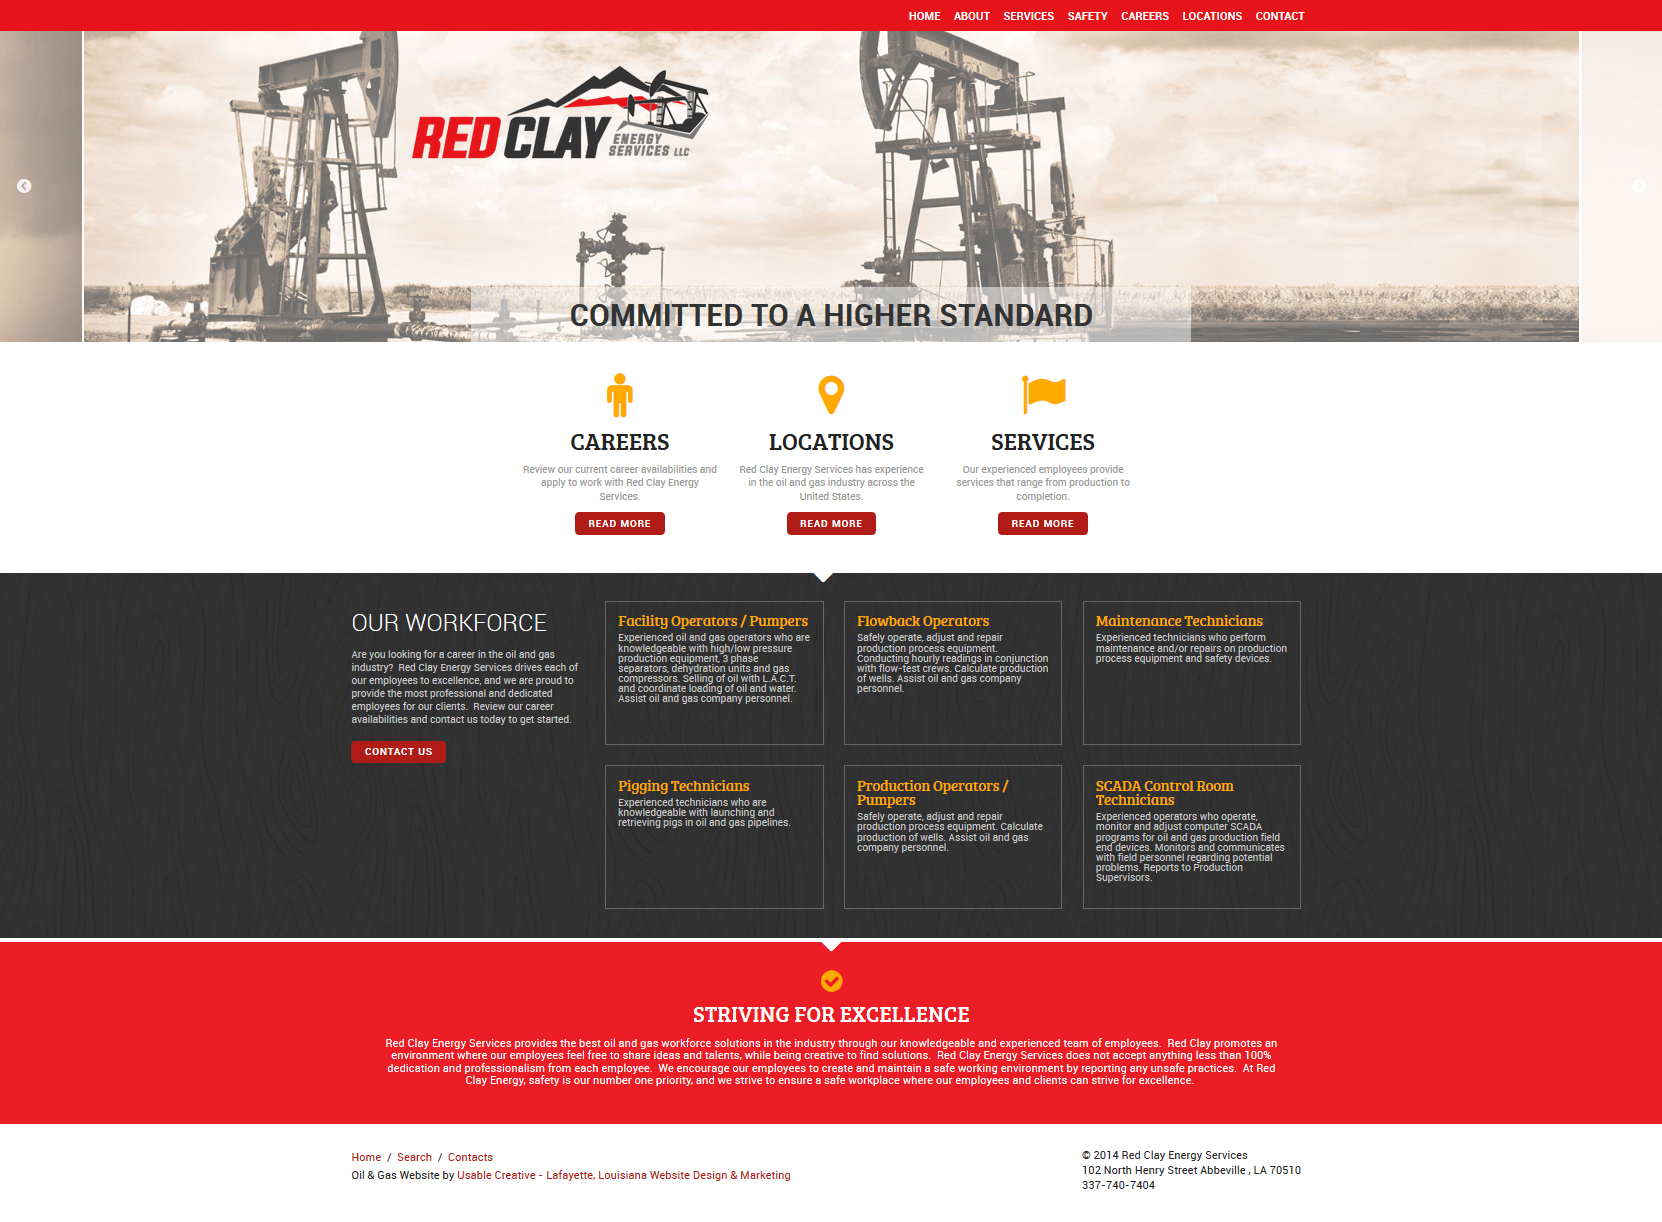 Red Clay Energy Services